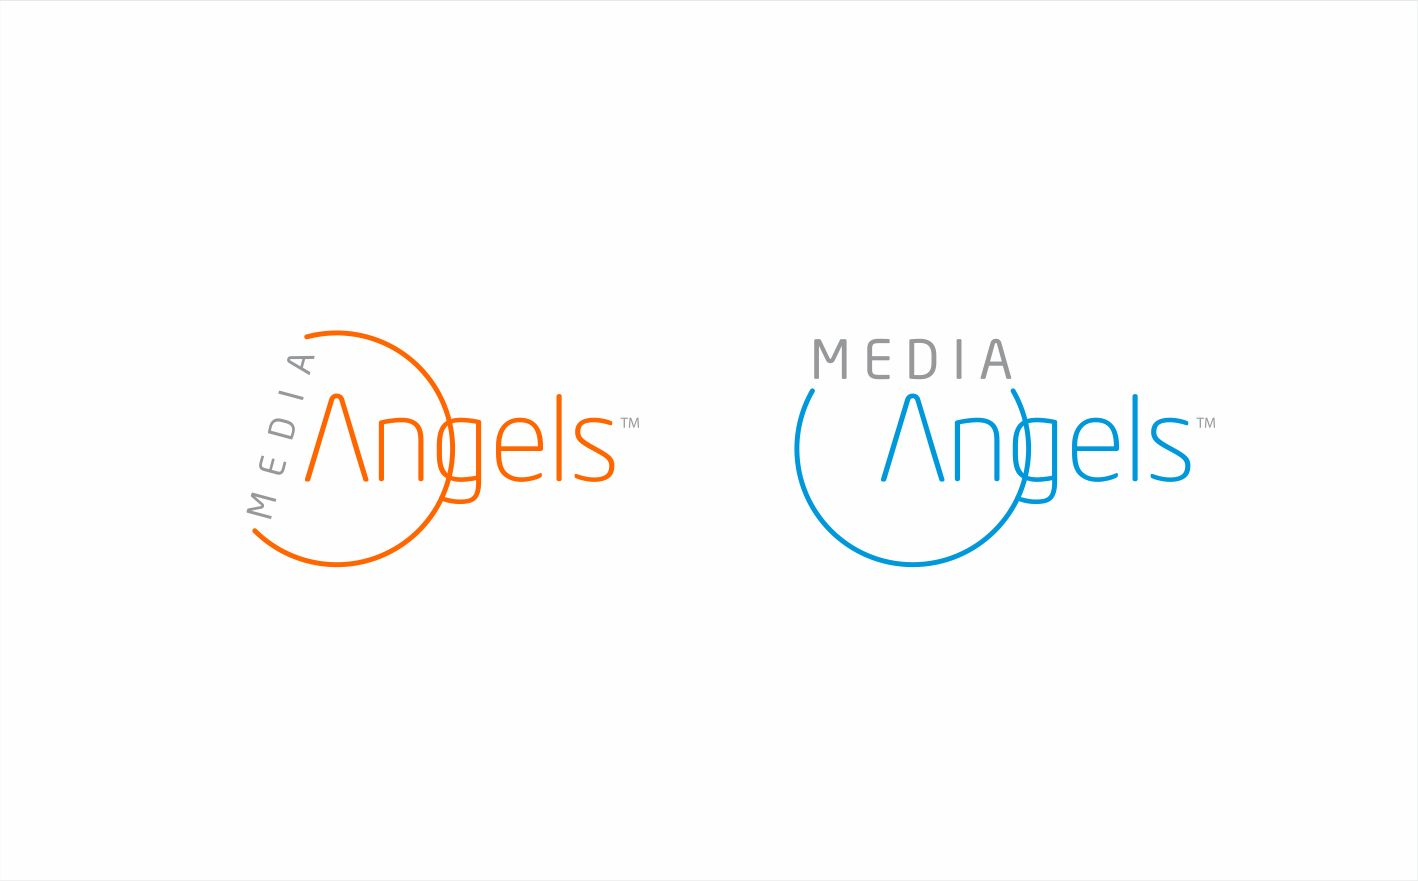 Logo Design by sihanss - Entry No. 146 in the Logo Design Contest New Logo Design for Media Angels.